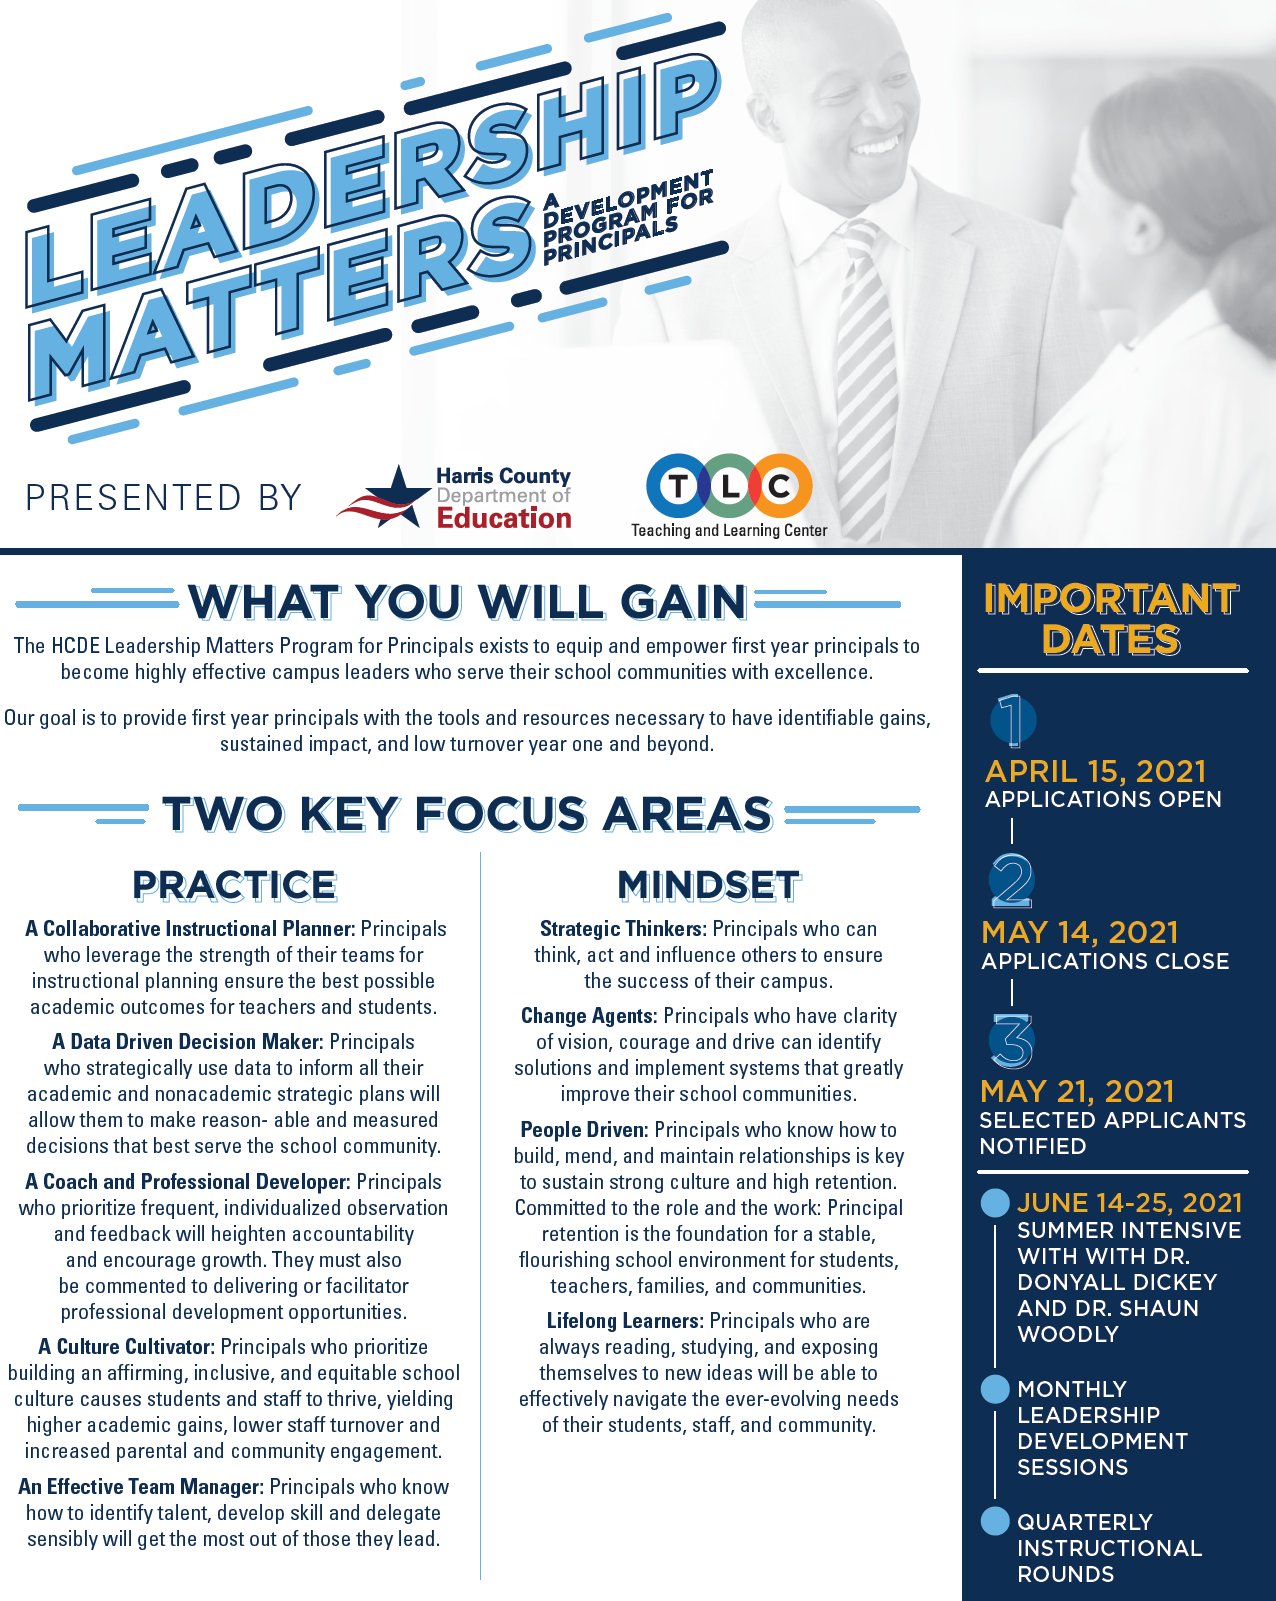 Image of Leadership Matters flyer